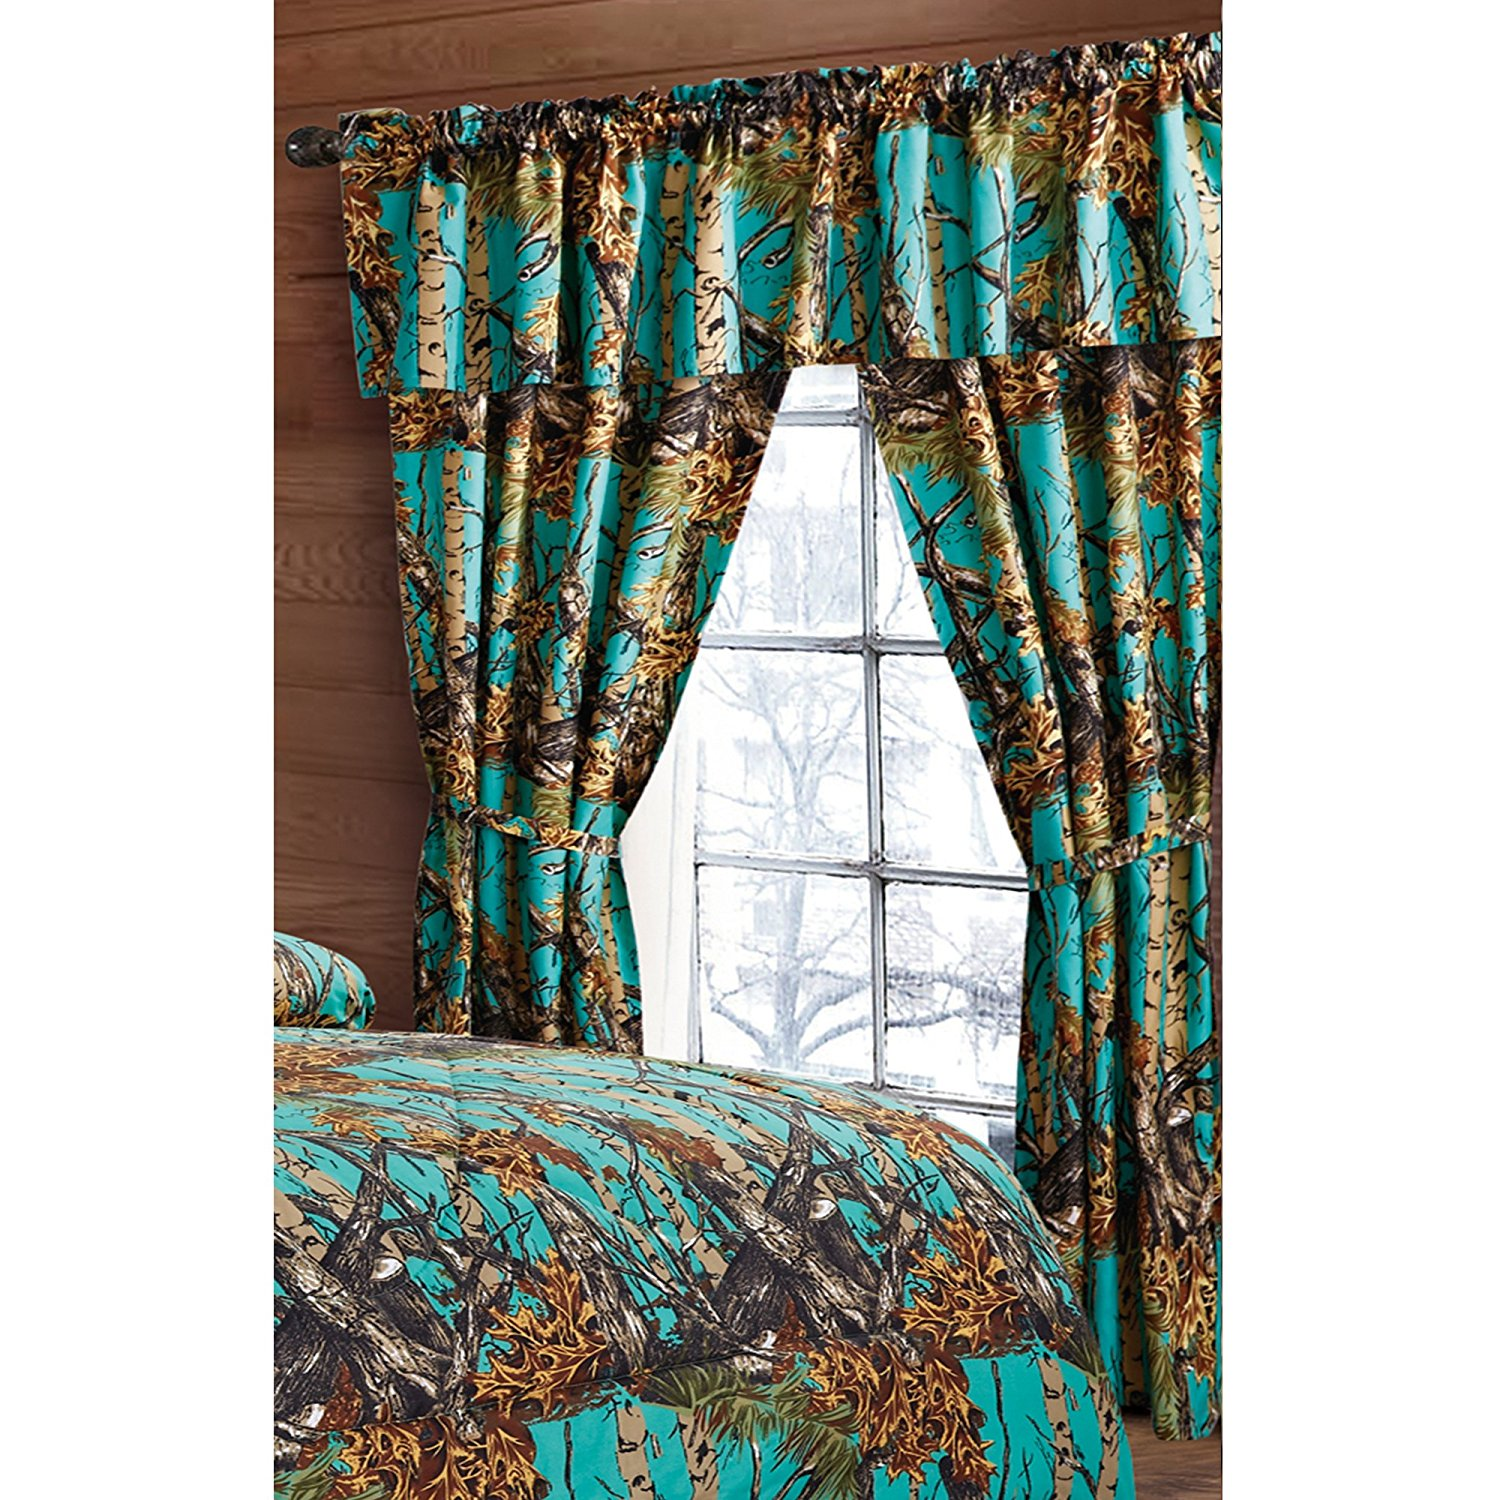 Regal Comfort The Woods Teal Camouflage 5pc Curtain Set For Hunters Cabin  Or Rustic Lodge Teens